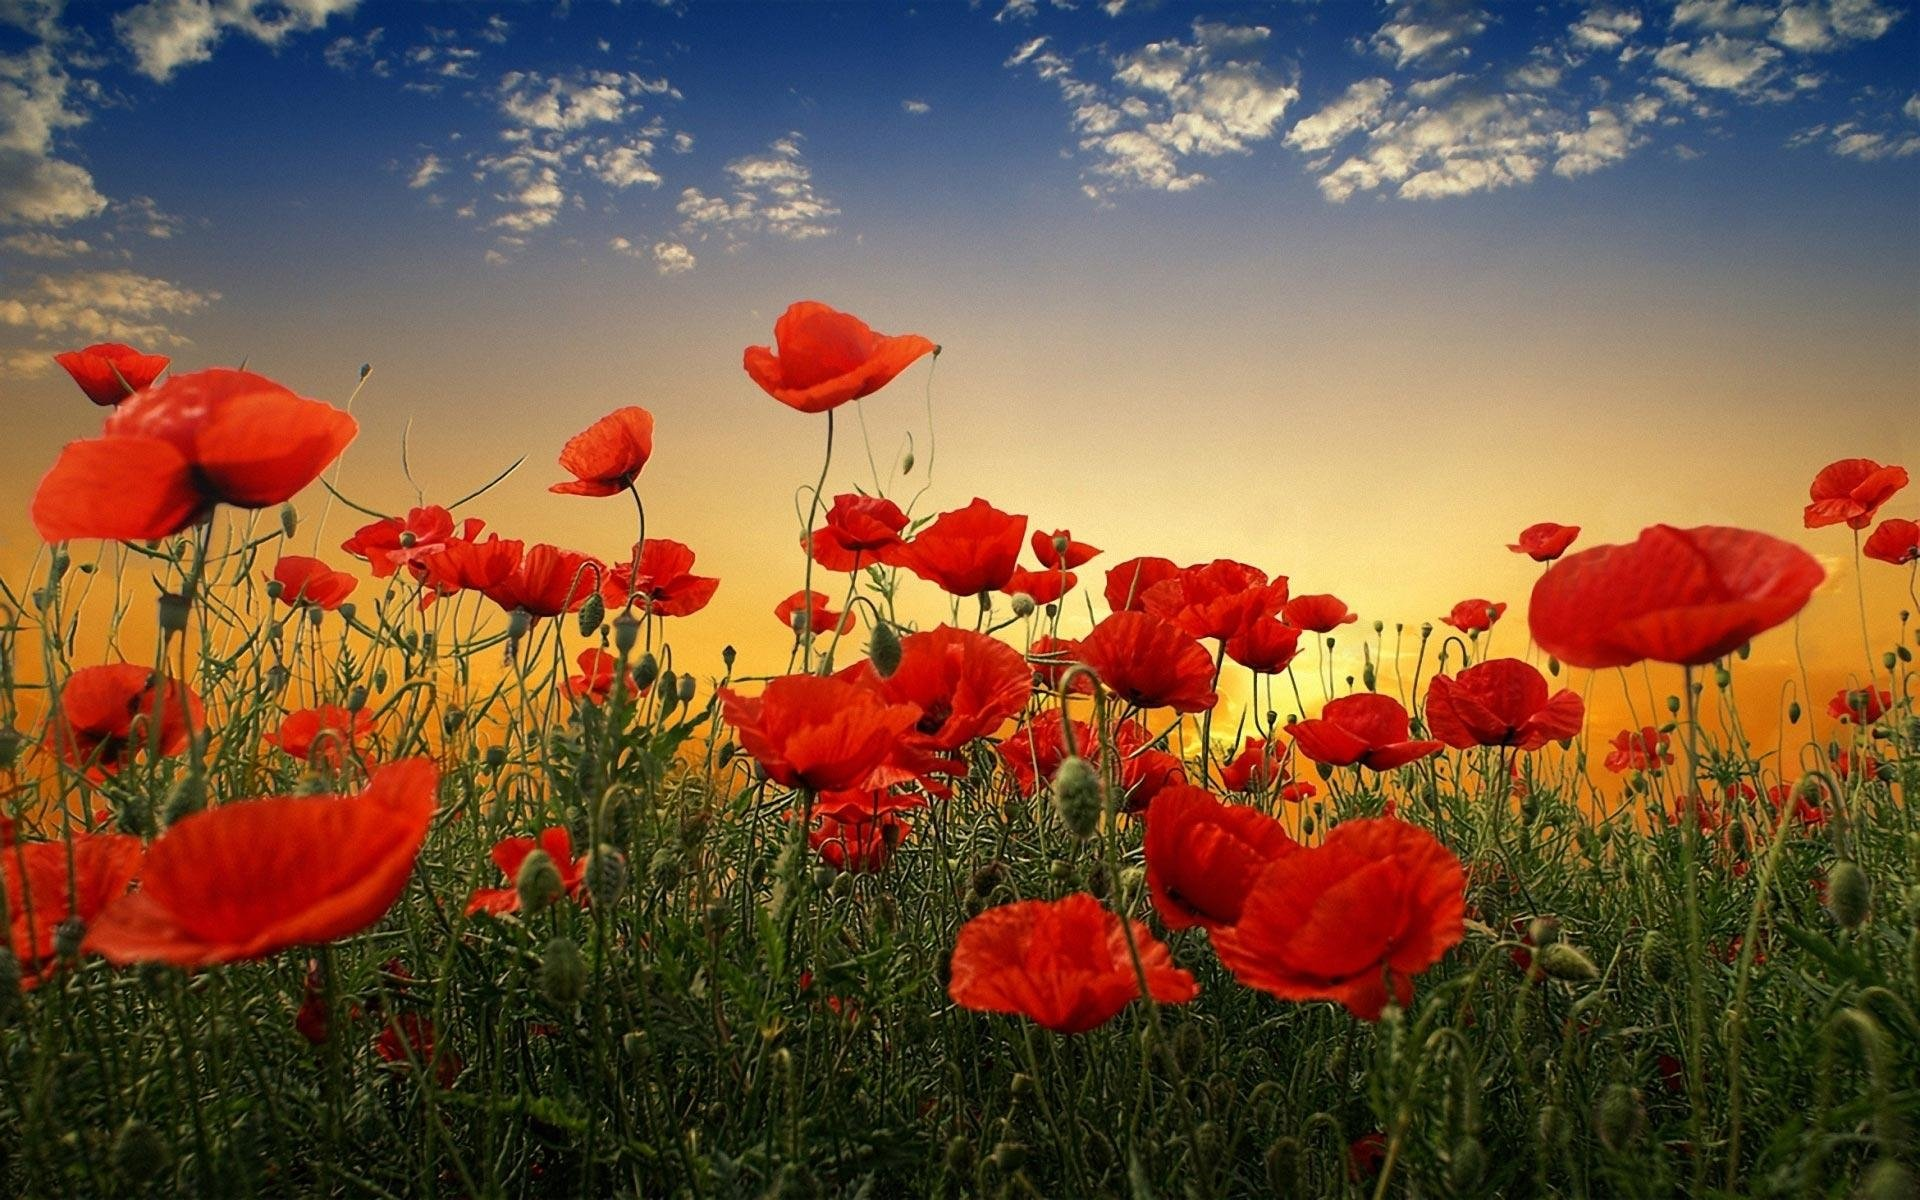 675 Poppy Hd Wallpapers Background Images Wallpaper Abyss